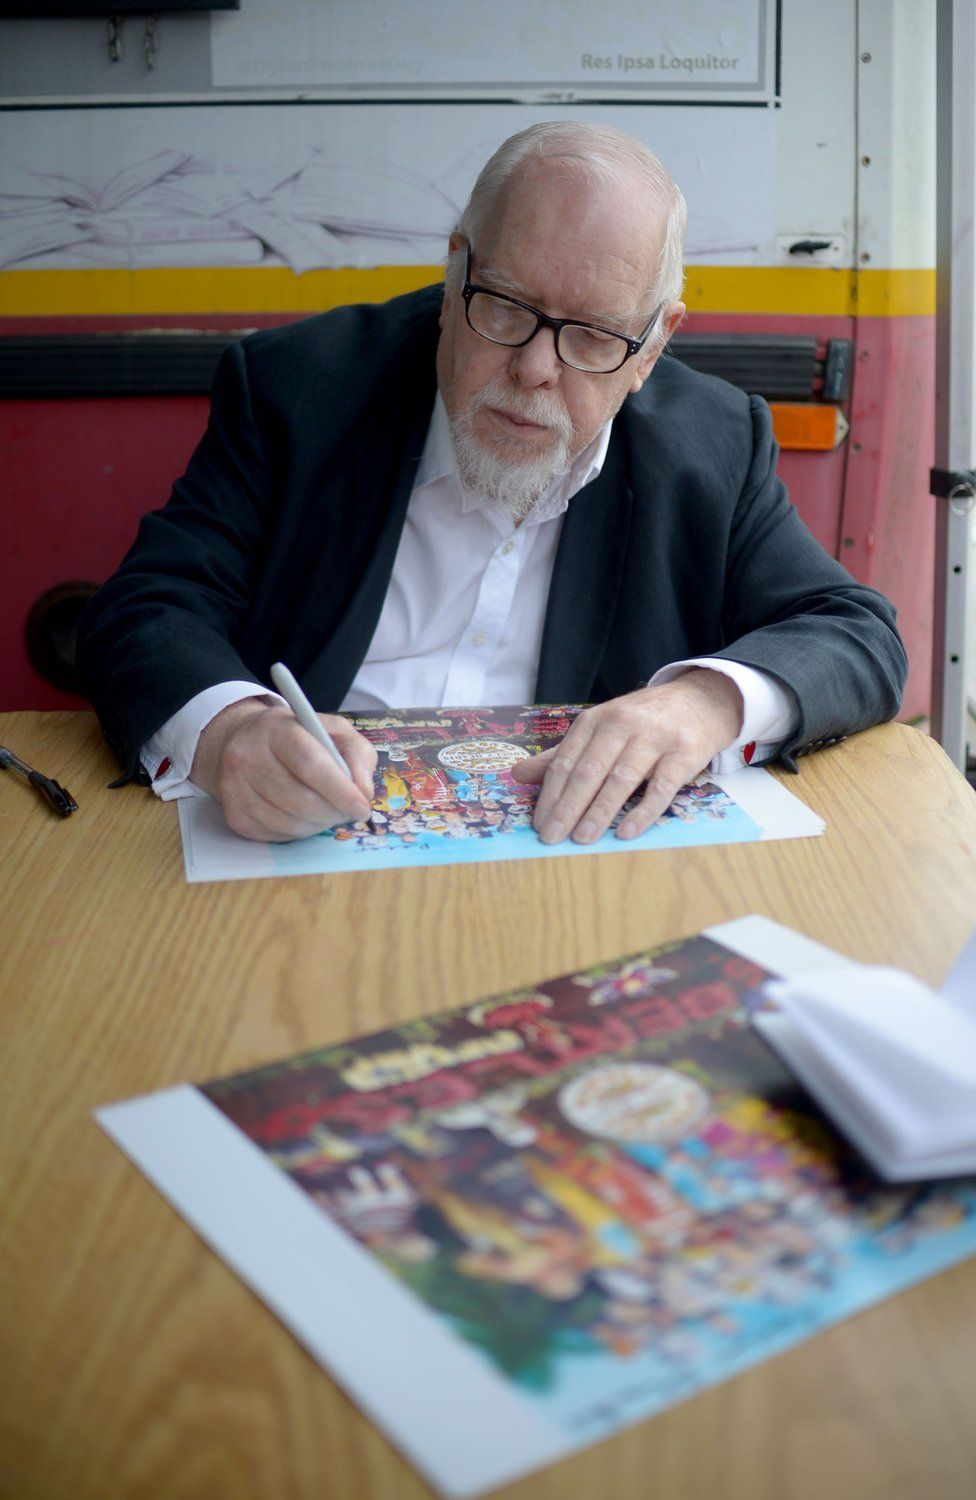 Sir Peter Blake allows remixes of his art on new Dazzle app